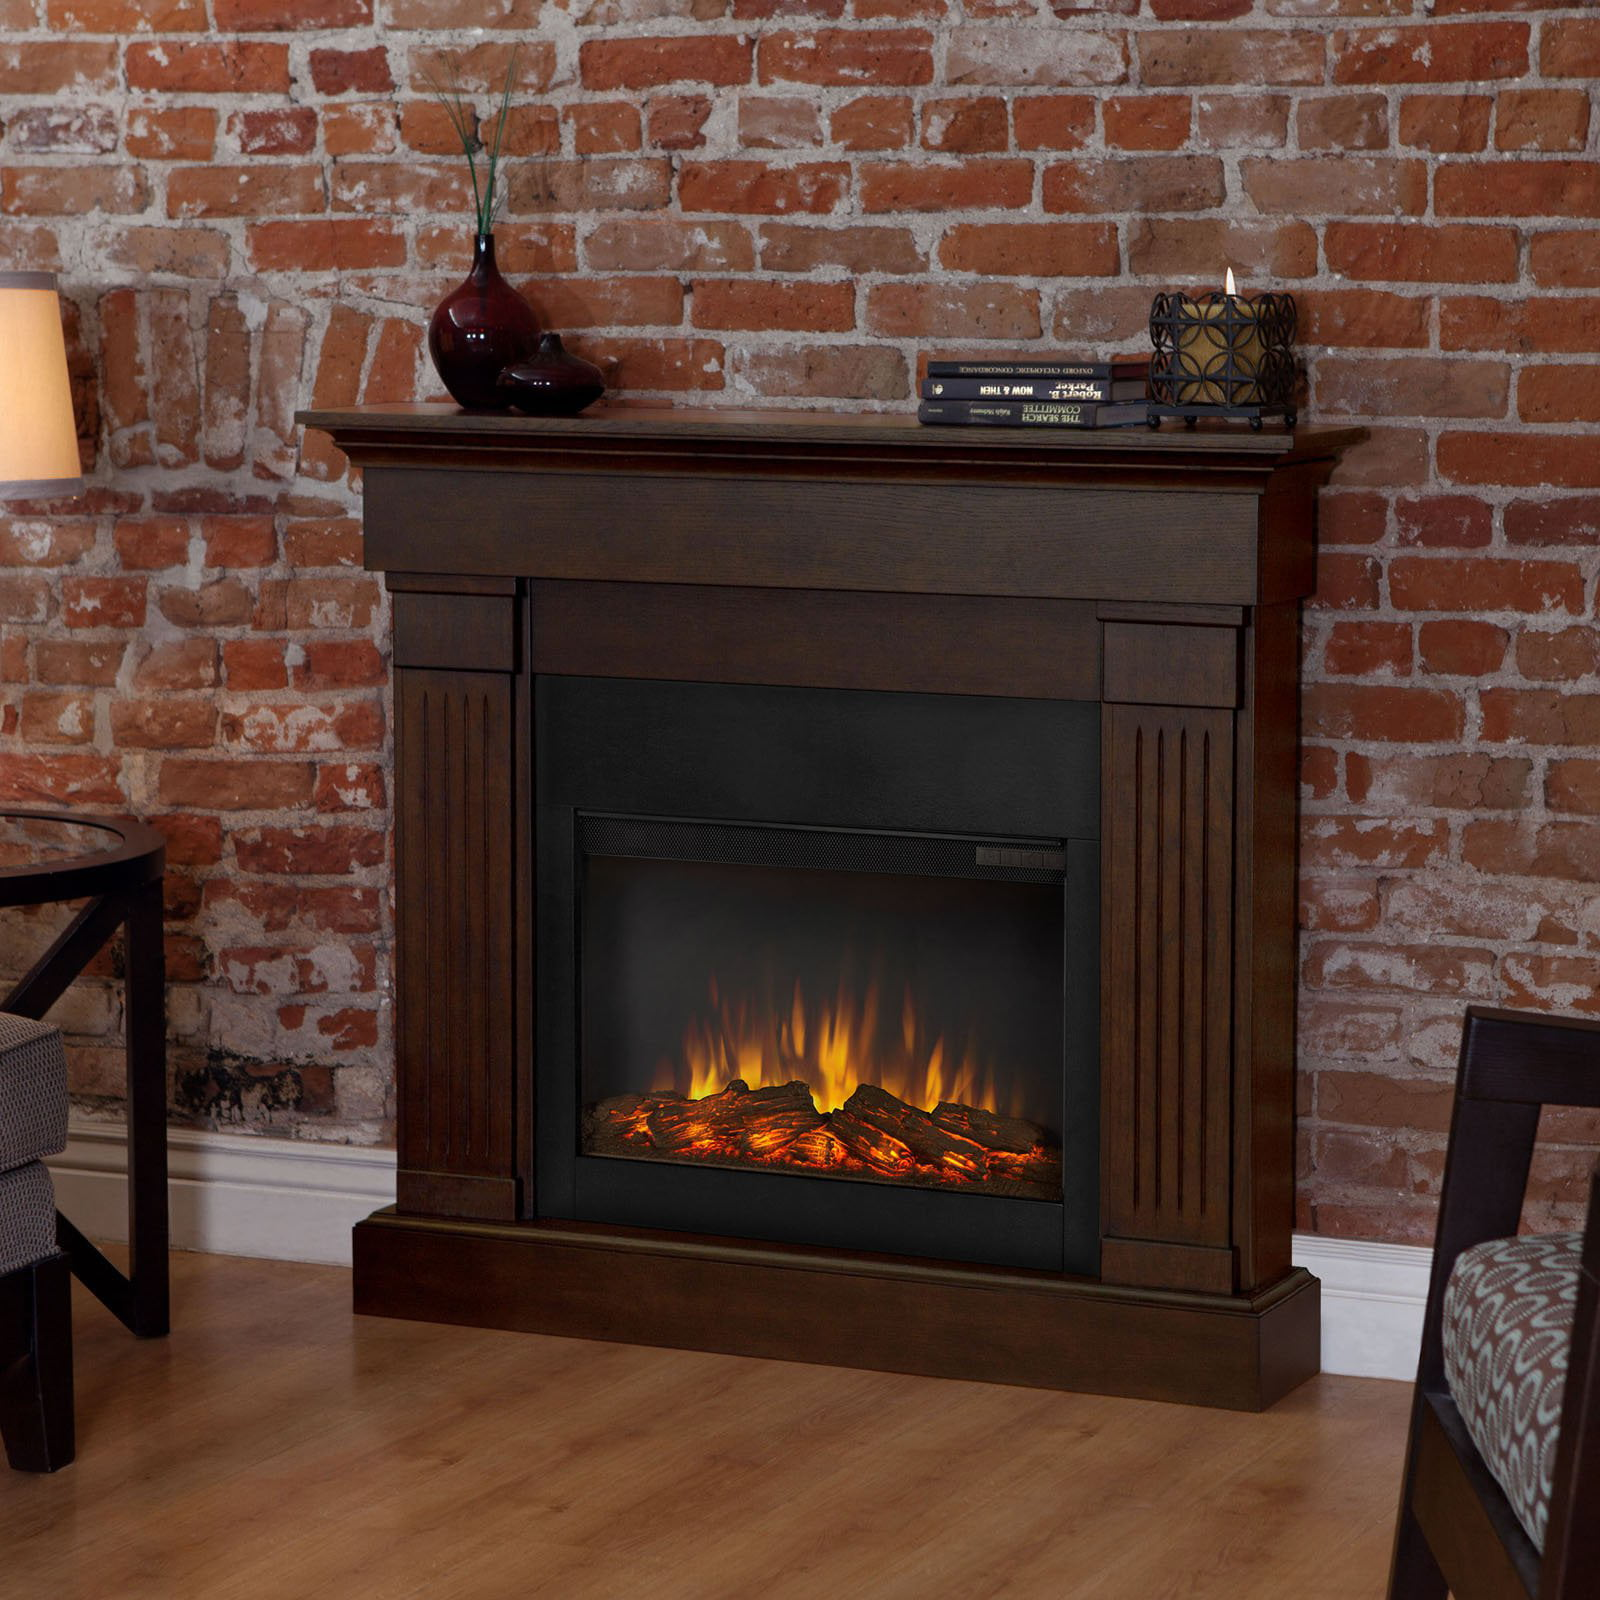 Real Flame Crawford Slim Line Electric Fireplace Chestnut Oak by Real Flame